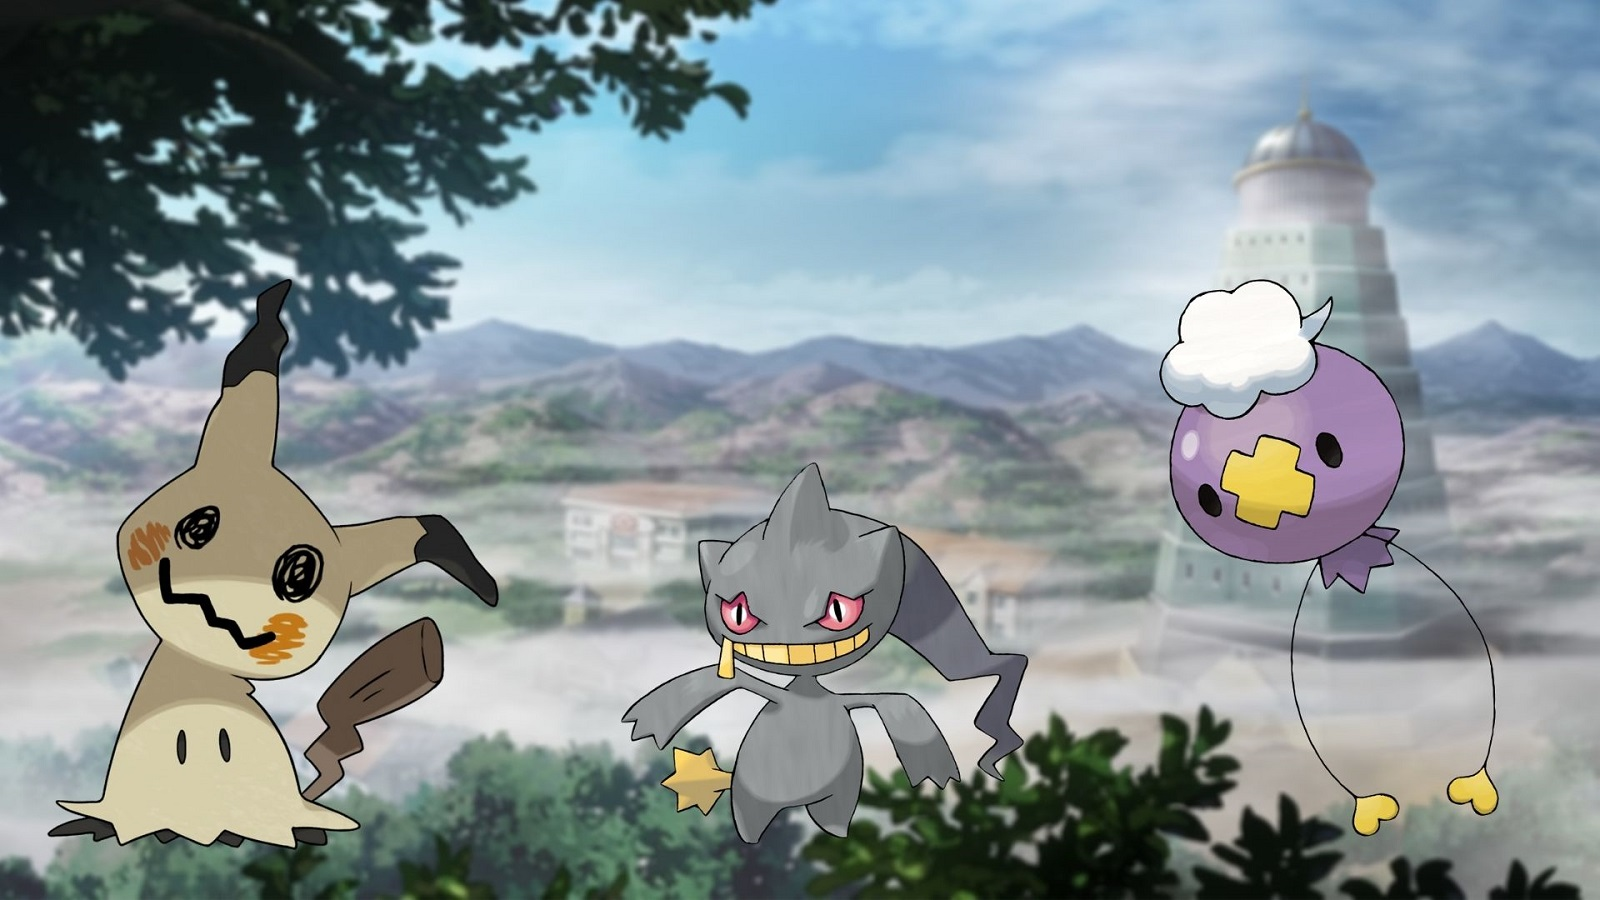 Lavender Town in the anime